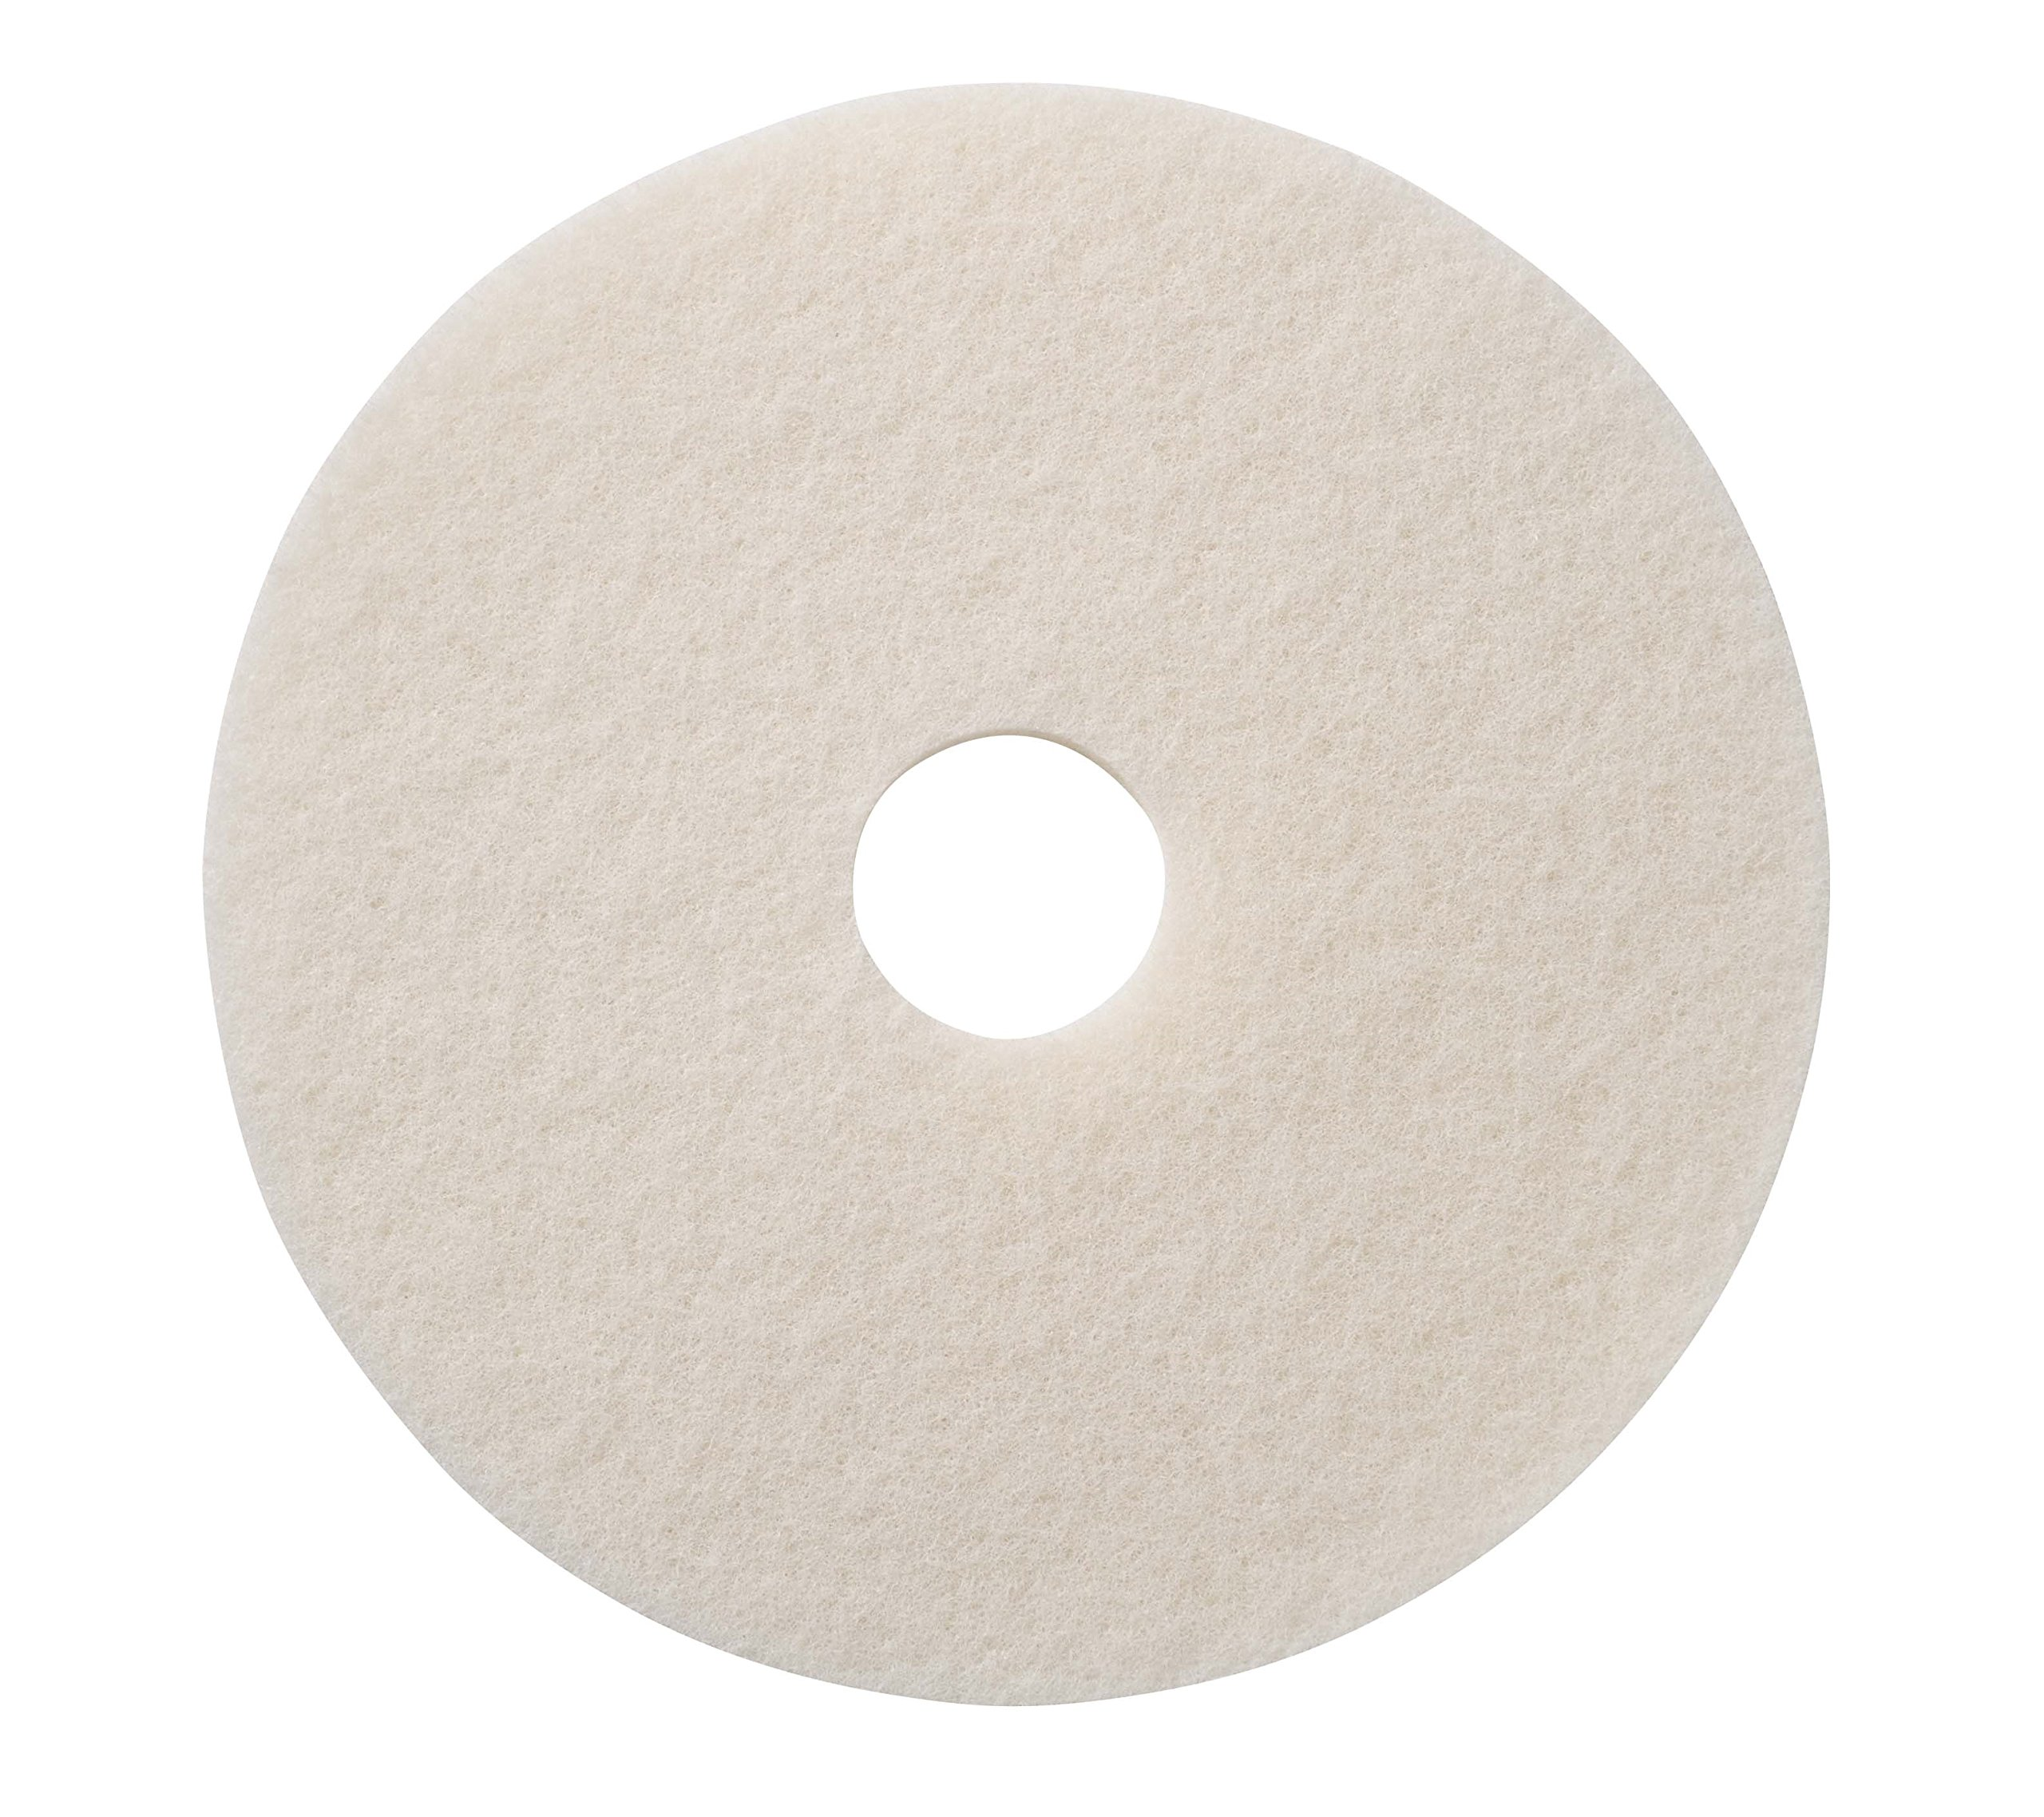 Glit/Microtron 401220 Super Polishing Pad, 20'', White (Pack of 5) by Glit / Microtron